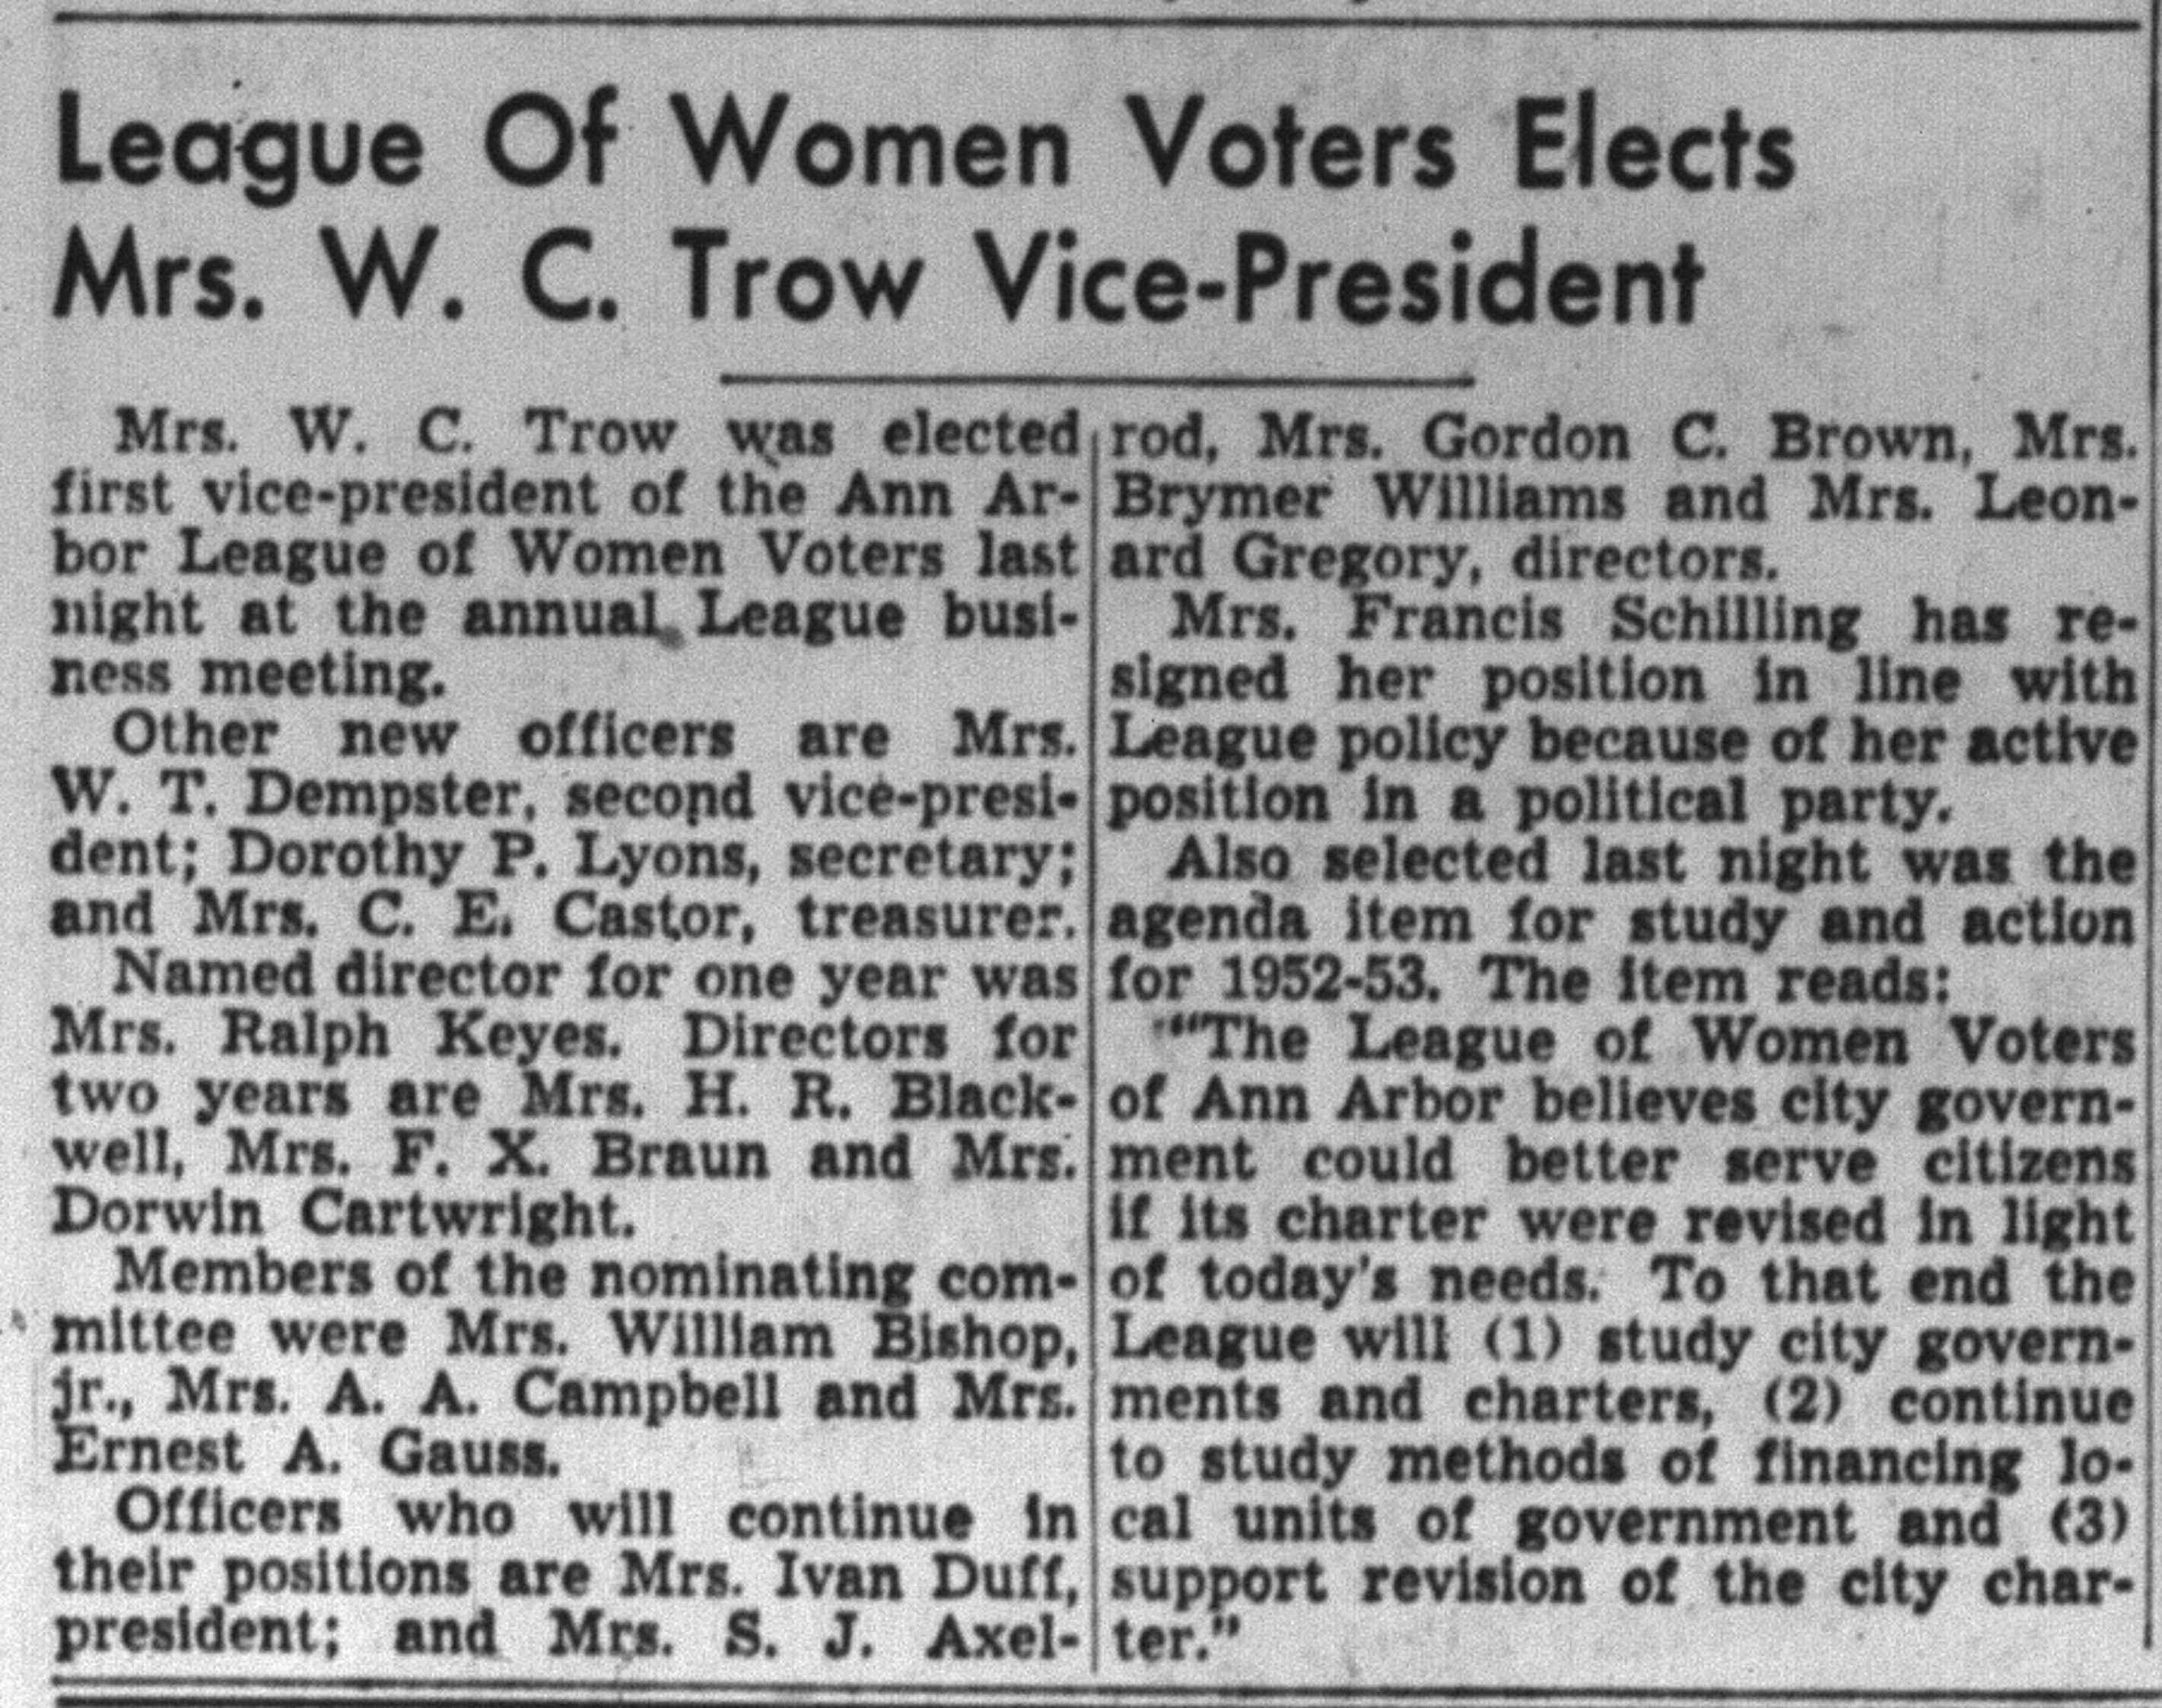 League Of Women Voters Elects Mrs. W. C. Trow Vice-President image